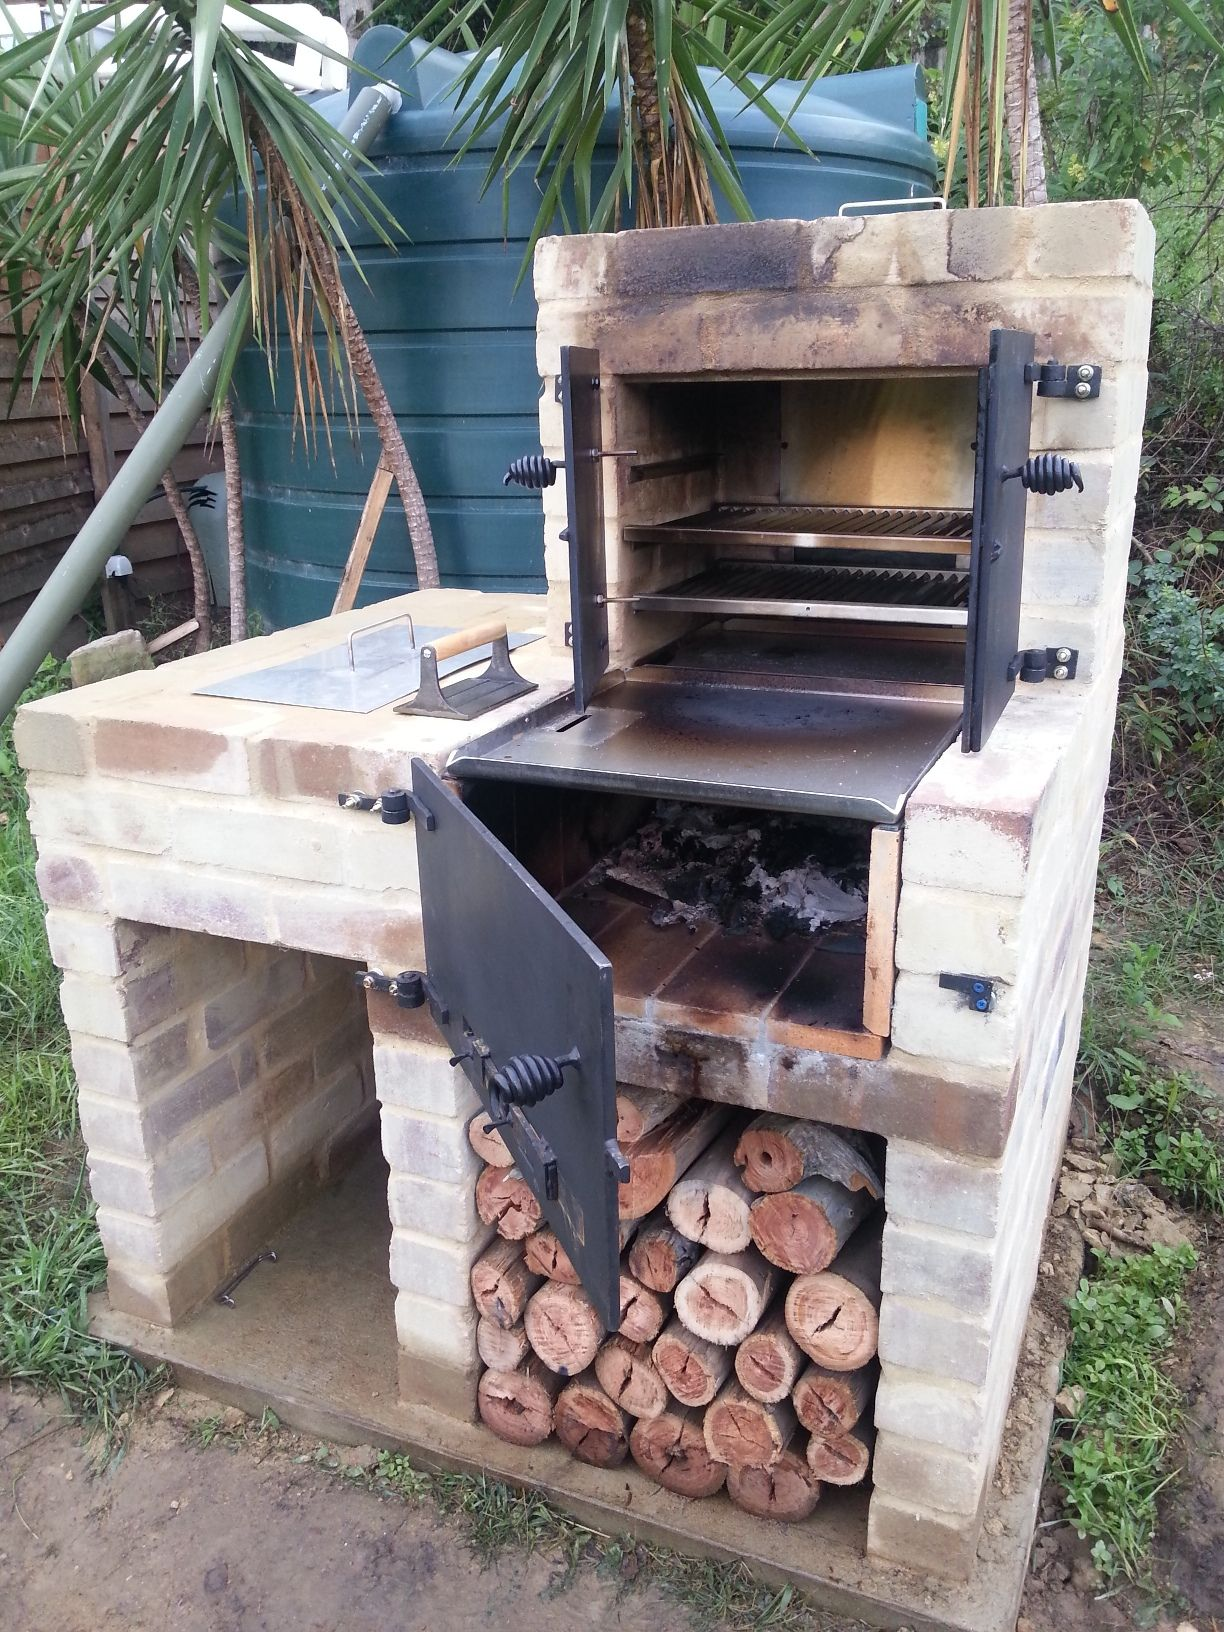 Smoker Outdoor Küche Finally Finished My Bbq Oven Smoker Contraption I Designed Myself